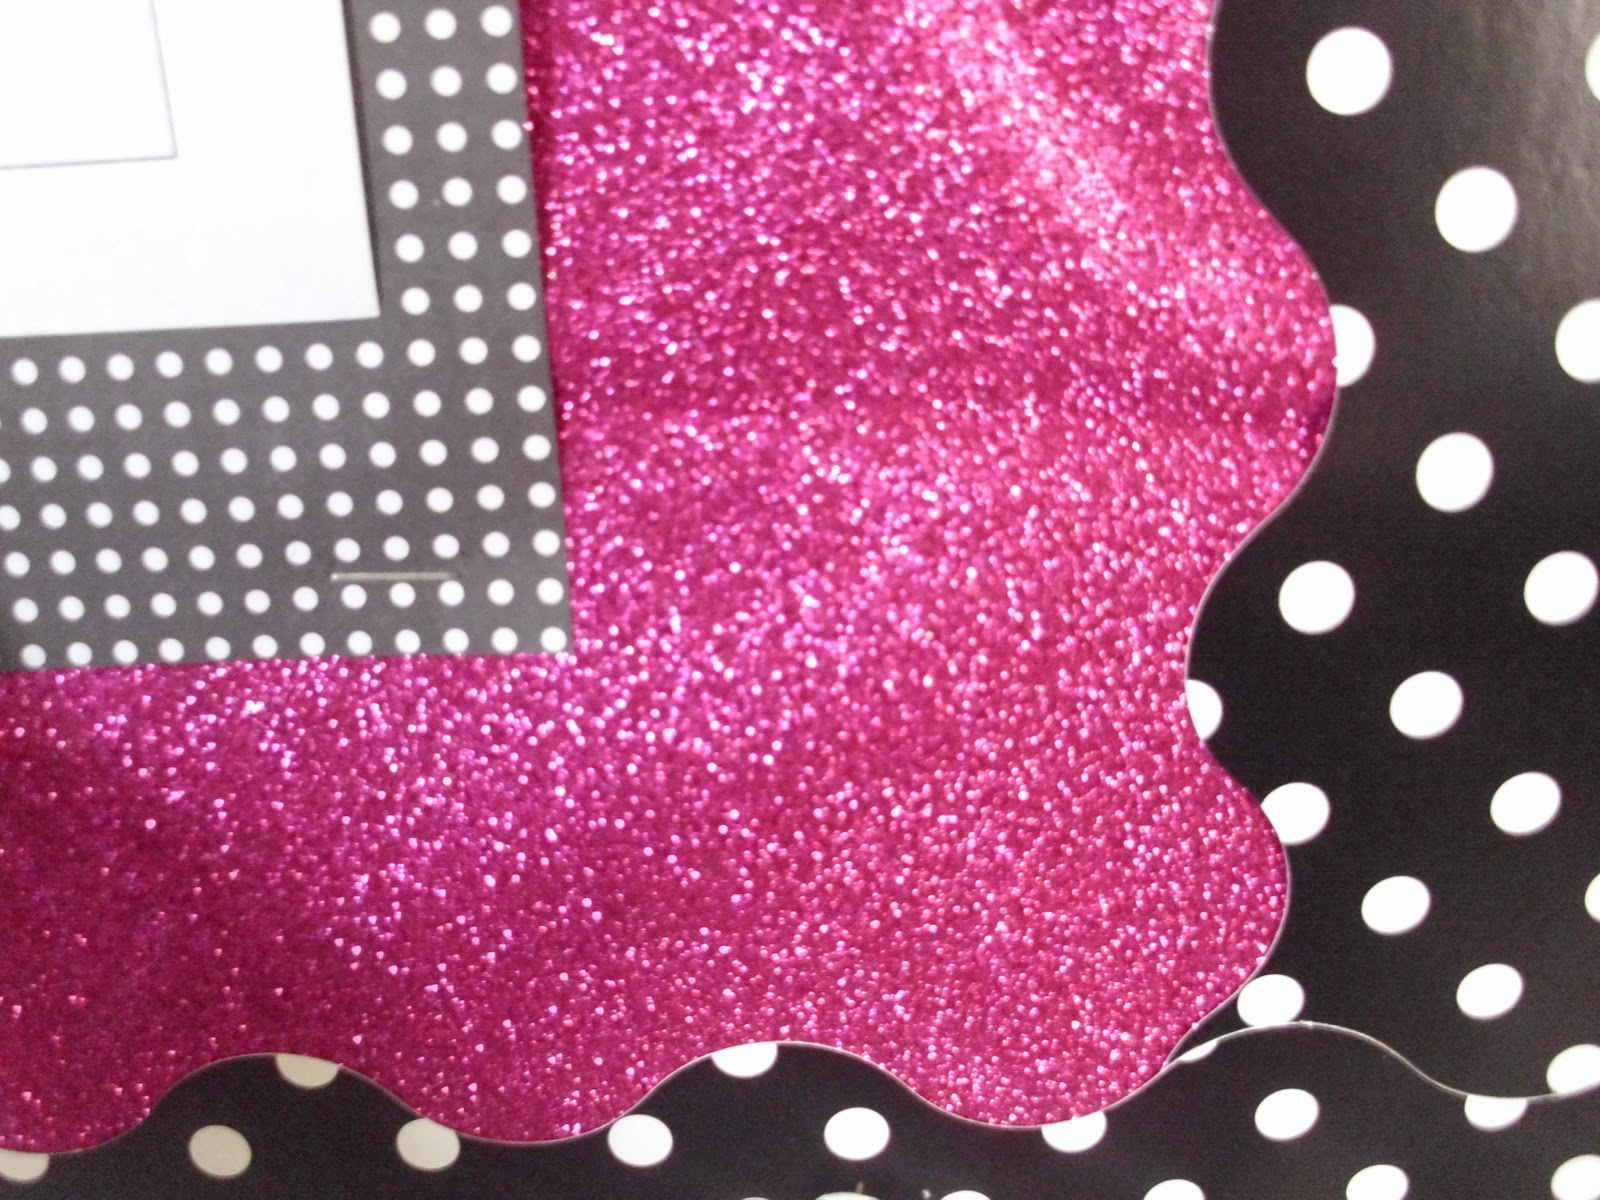 polka dot tissue paper Brown dots on white tissue paper, 20 x 30 rated 5 out of 5 by toad from lively i am so glad i chose the brown polka dots on the white background as this.